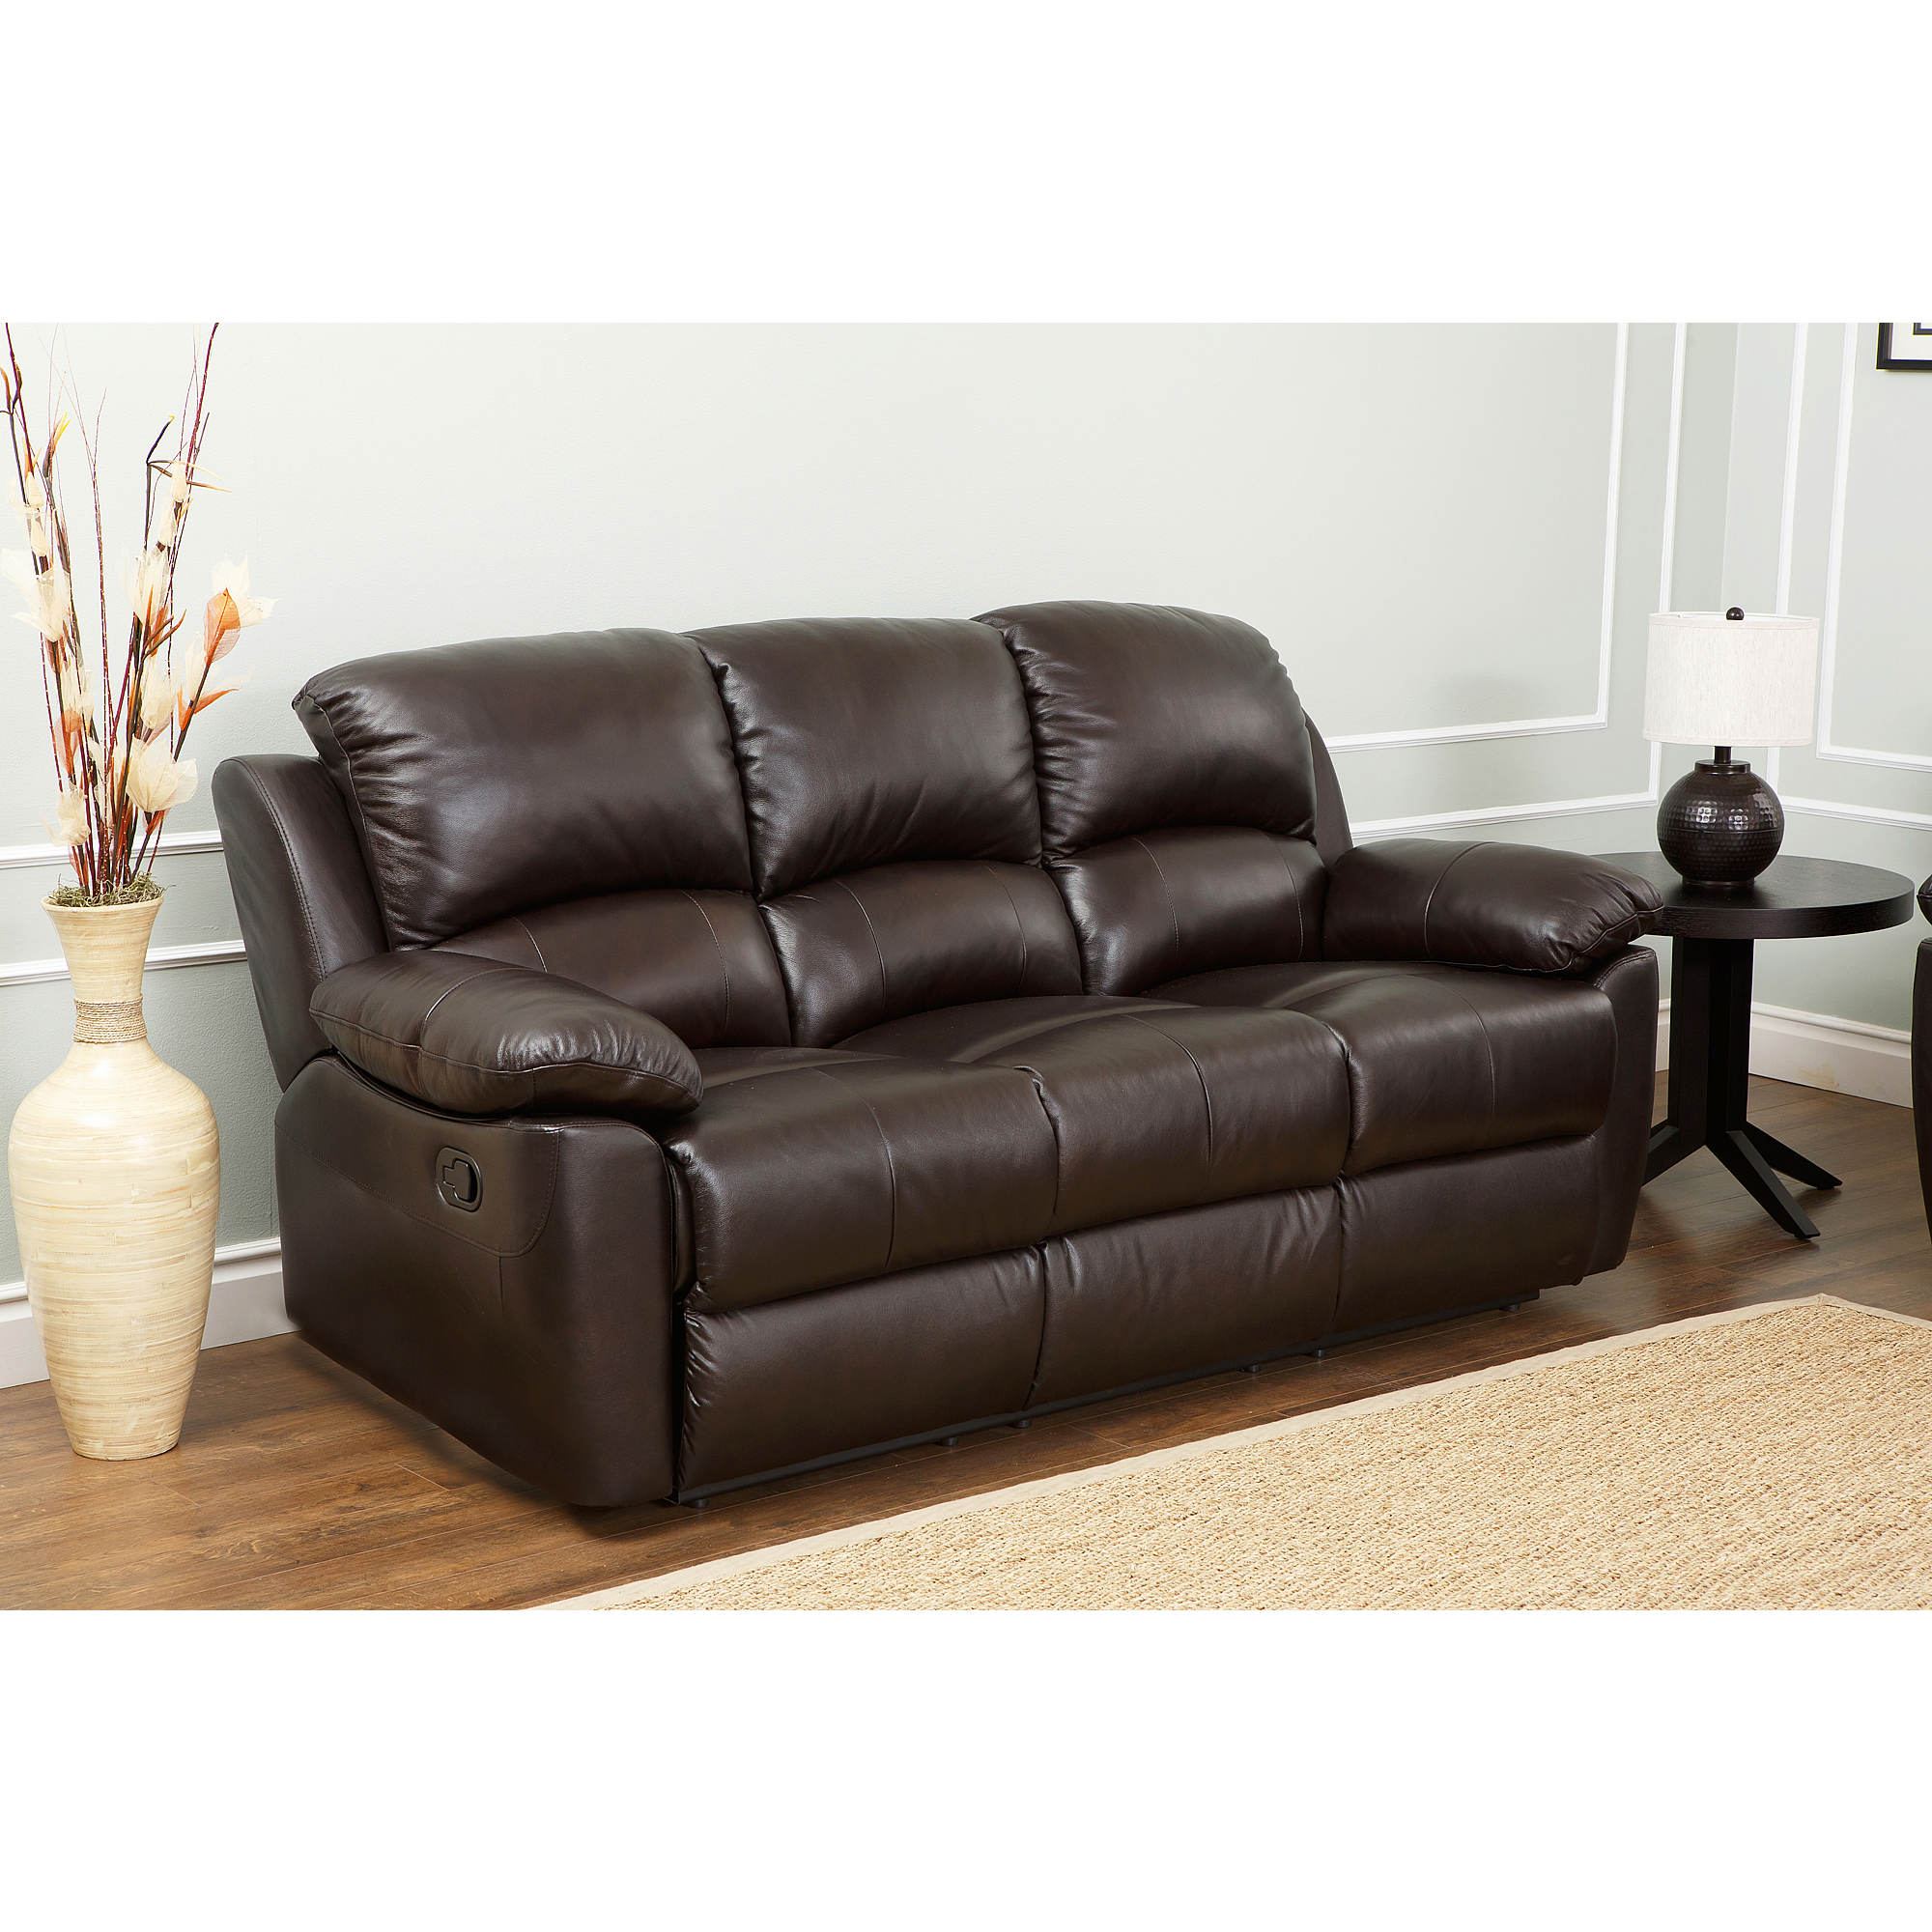 Espresso Leather Reclining Sofa: Abbyson Living Toscana Italian Leather Reclining Sofa